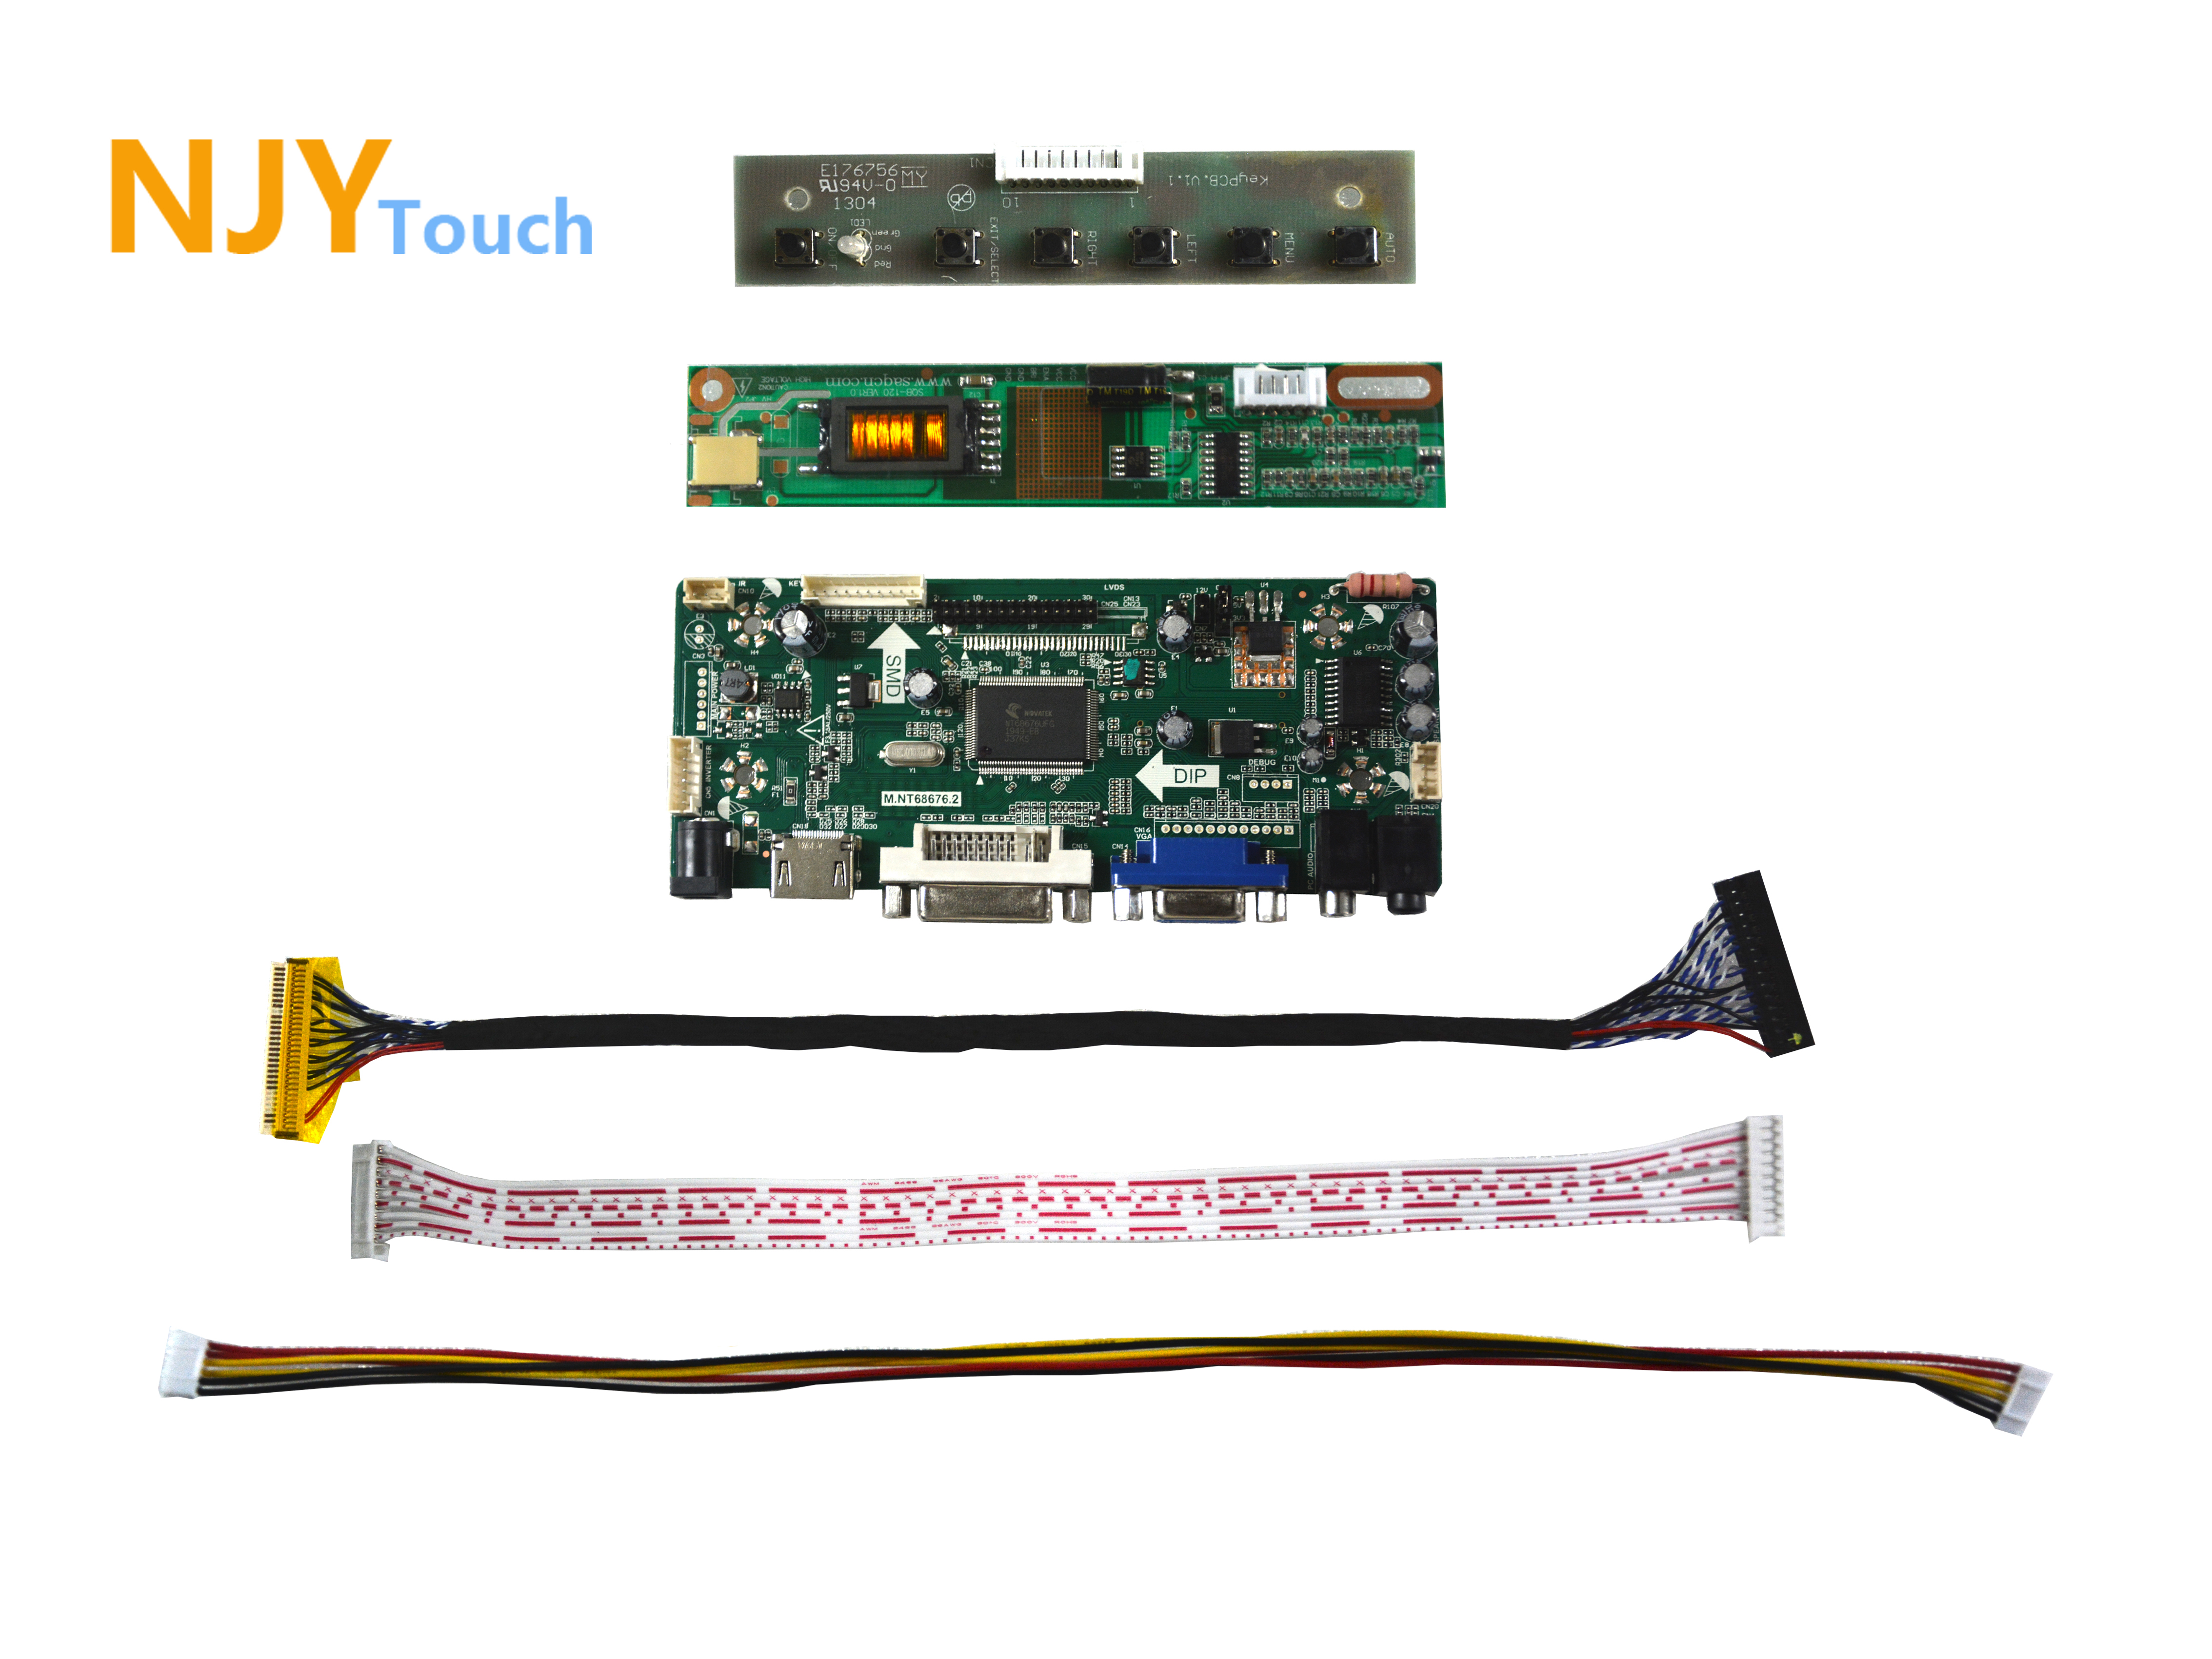 NJYTouch M.NT68676.2A HDMI VGA DVI Controller Board For 14.1inch LP141WP1-TLA3 LP141WP1-TLC2 1440x900 LCD Screen